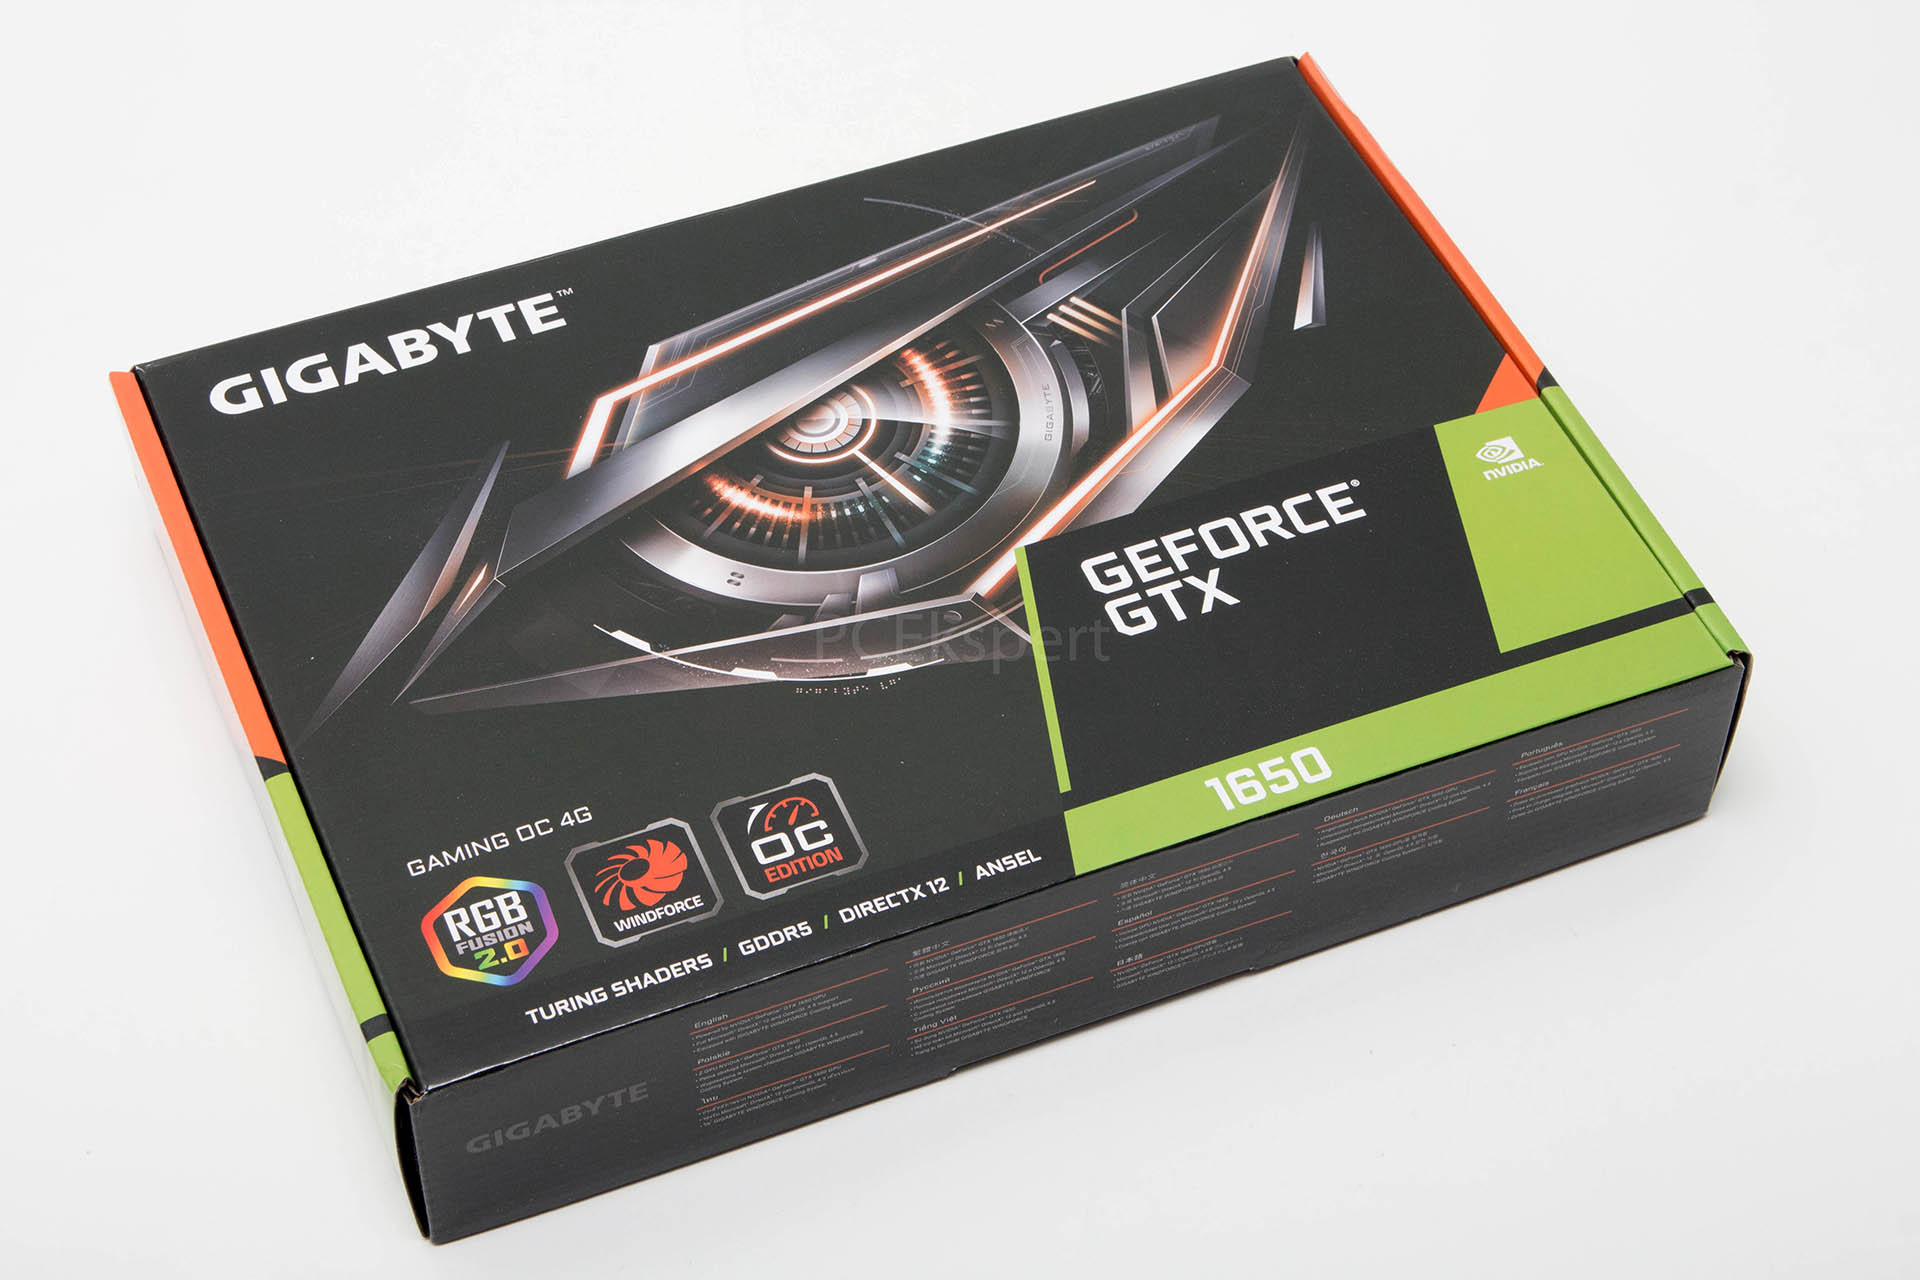 Gigabyte GeForce GTX 1650 Gaming OC 4G recenzija